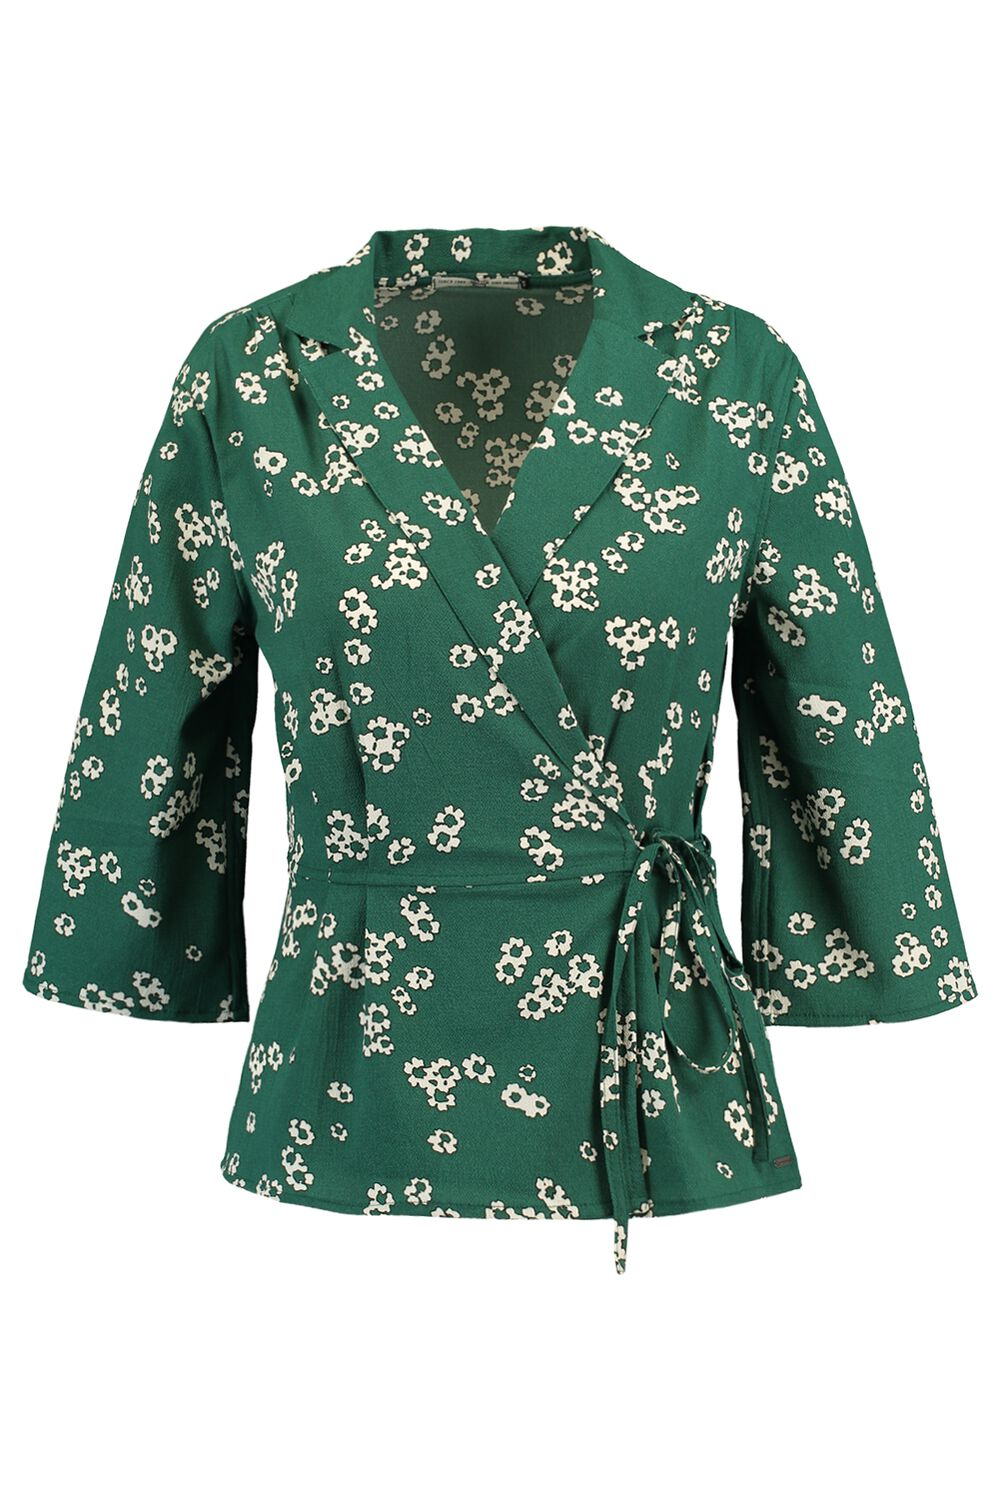 America Today Dames Blouse Brette Groen